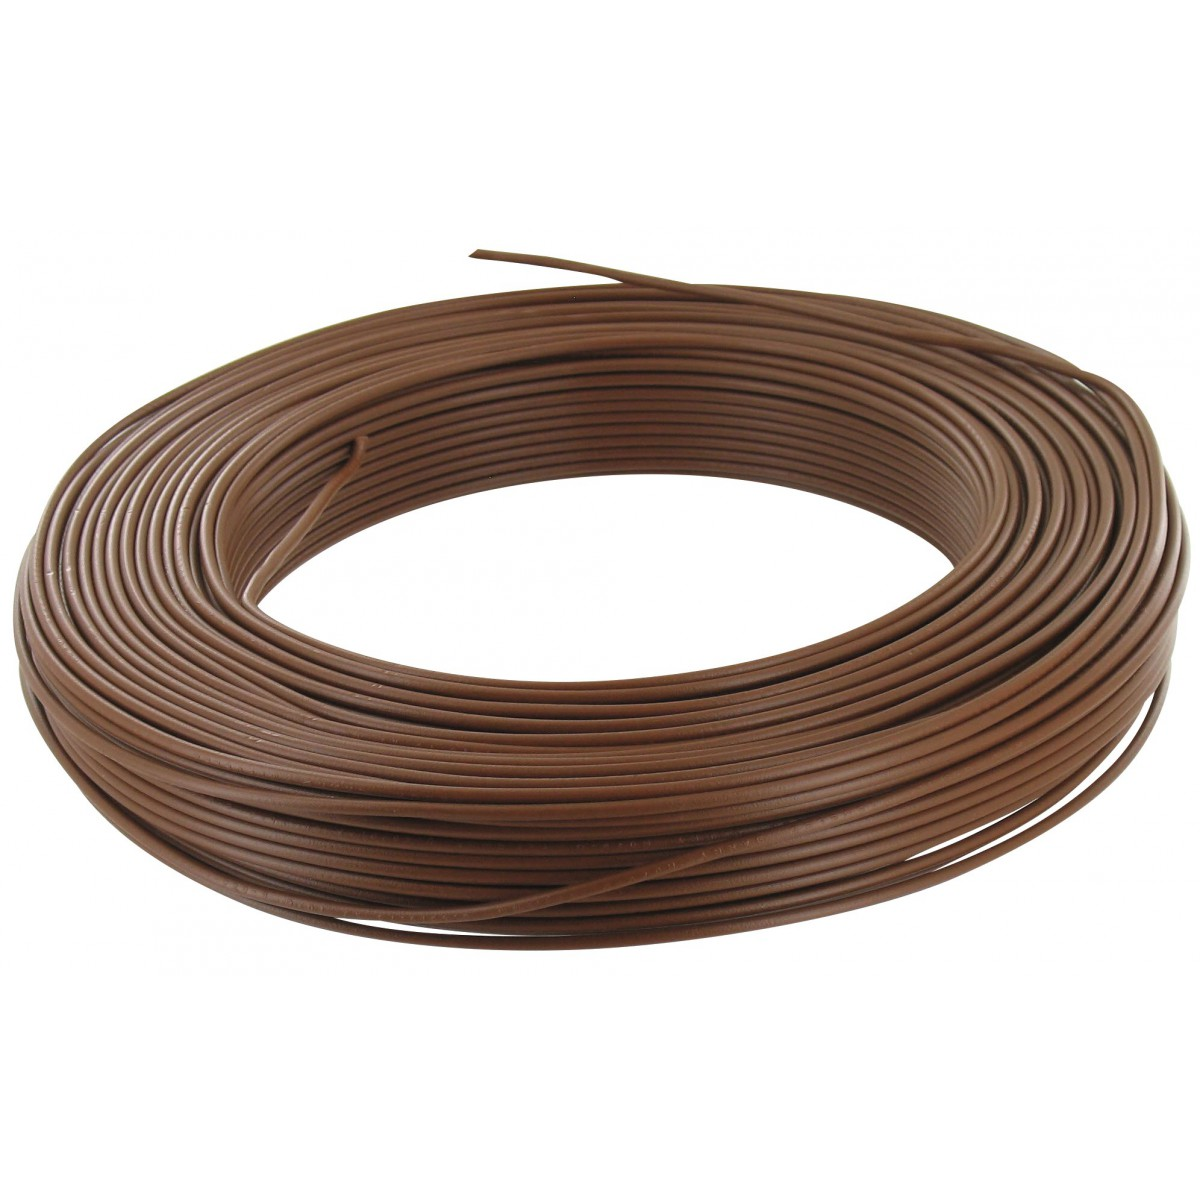 Electricité Fil Marron Fil H07 V U 2 5 Mm² Couronne 100 M Marron De Fil